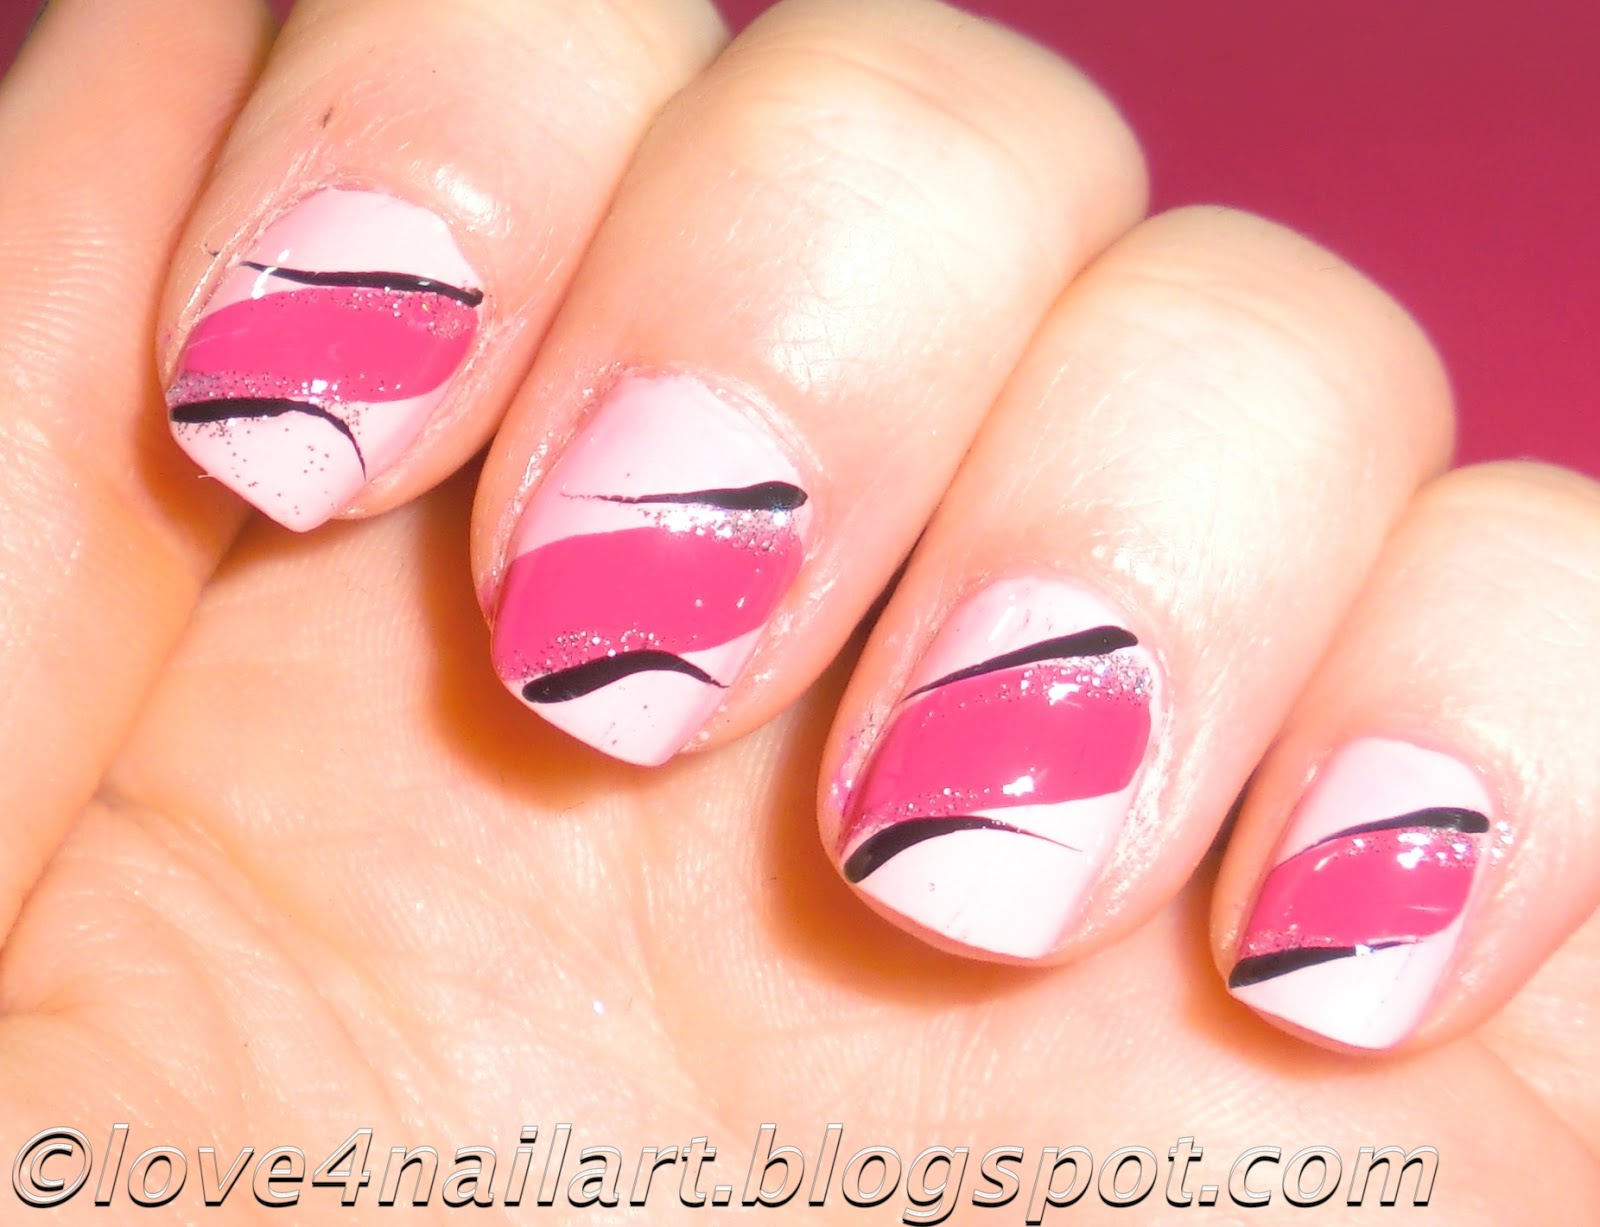 EASY Pink Nail Art Design 4 Short Nails/Beginners (tutorial)